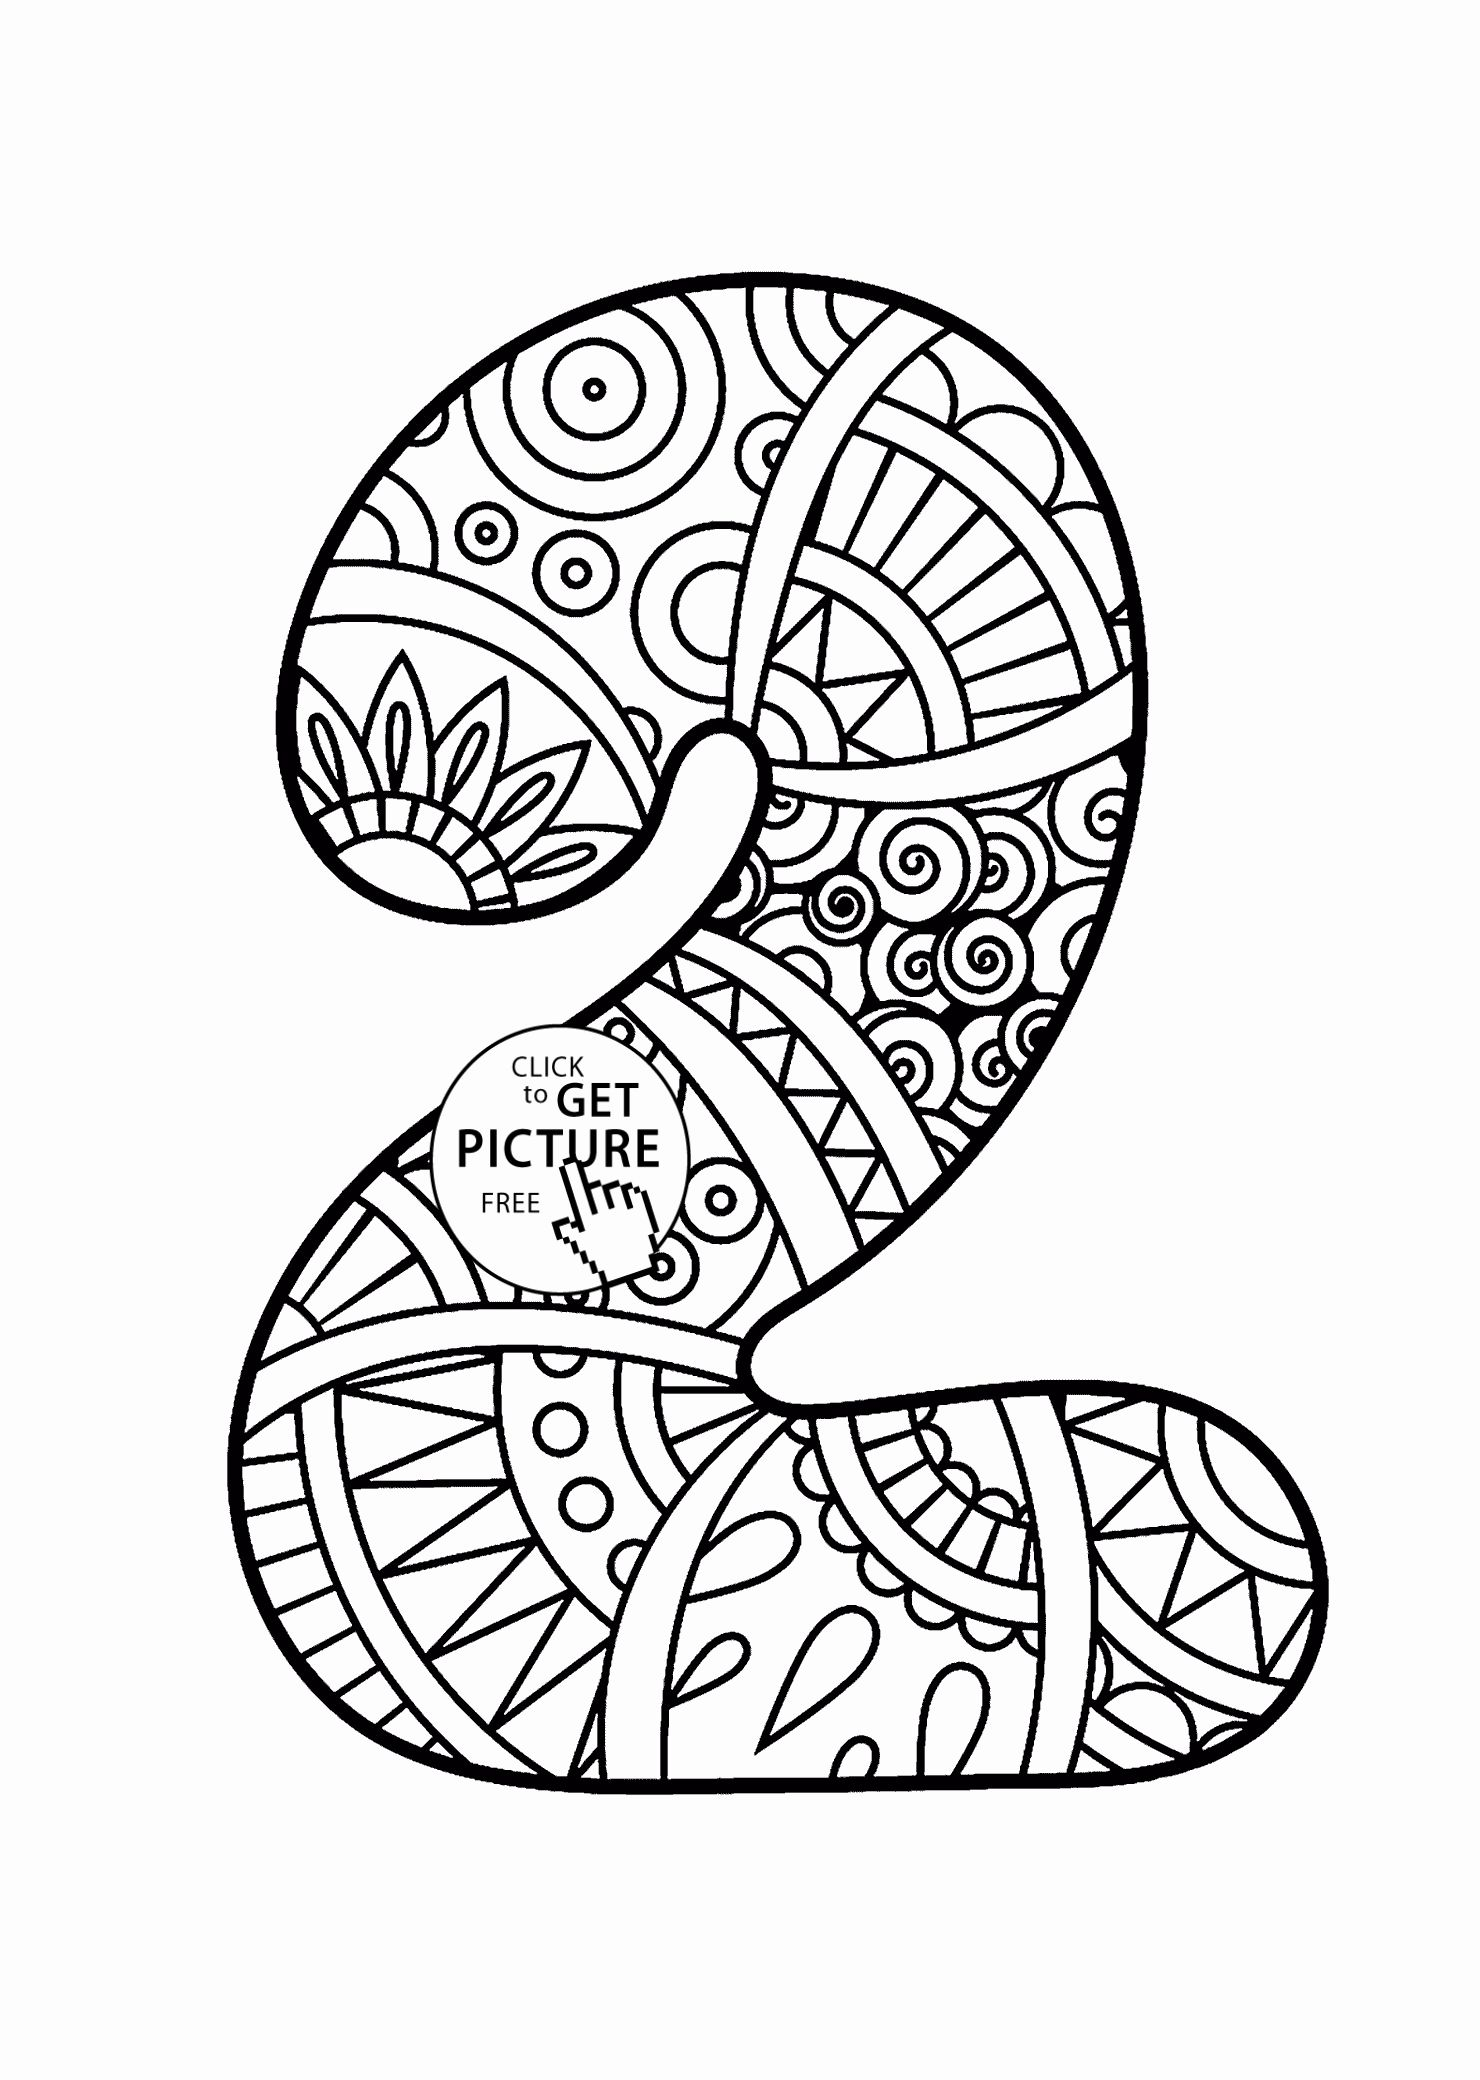 Number Two Coloring Sheet Lovely Pattern Number 2 Coloring Pages For Kids Counting Numbers In 2020